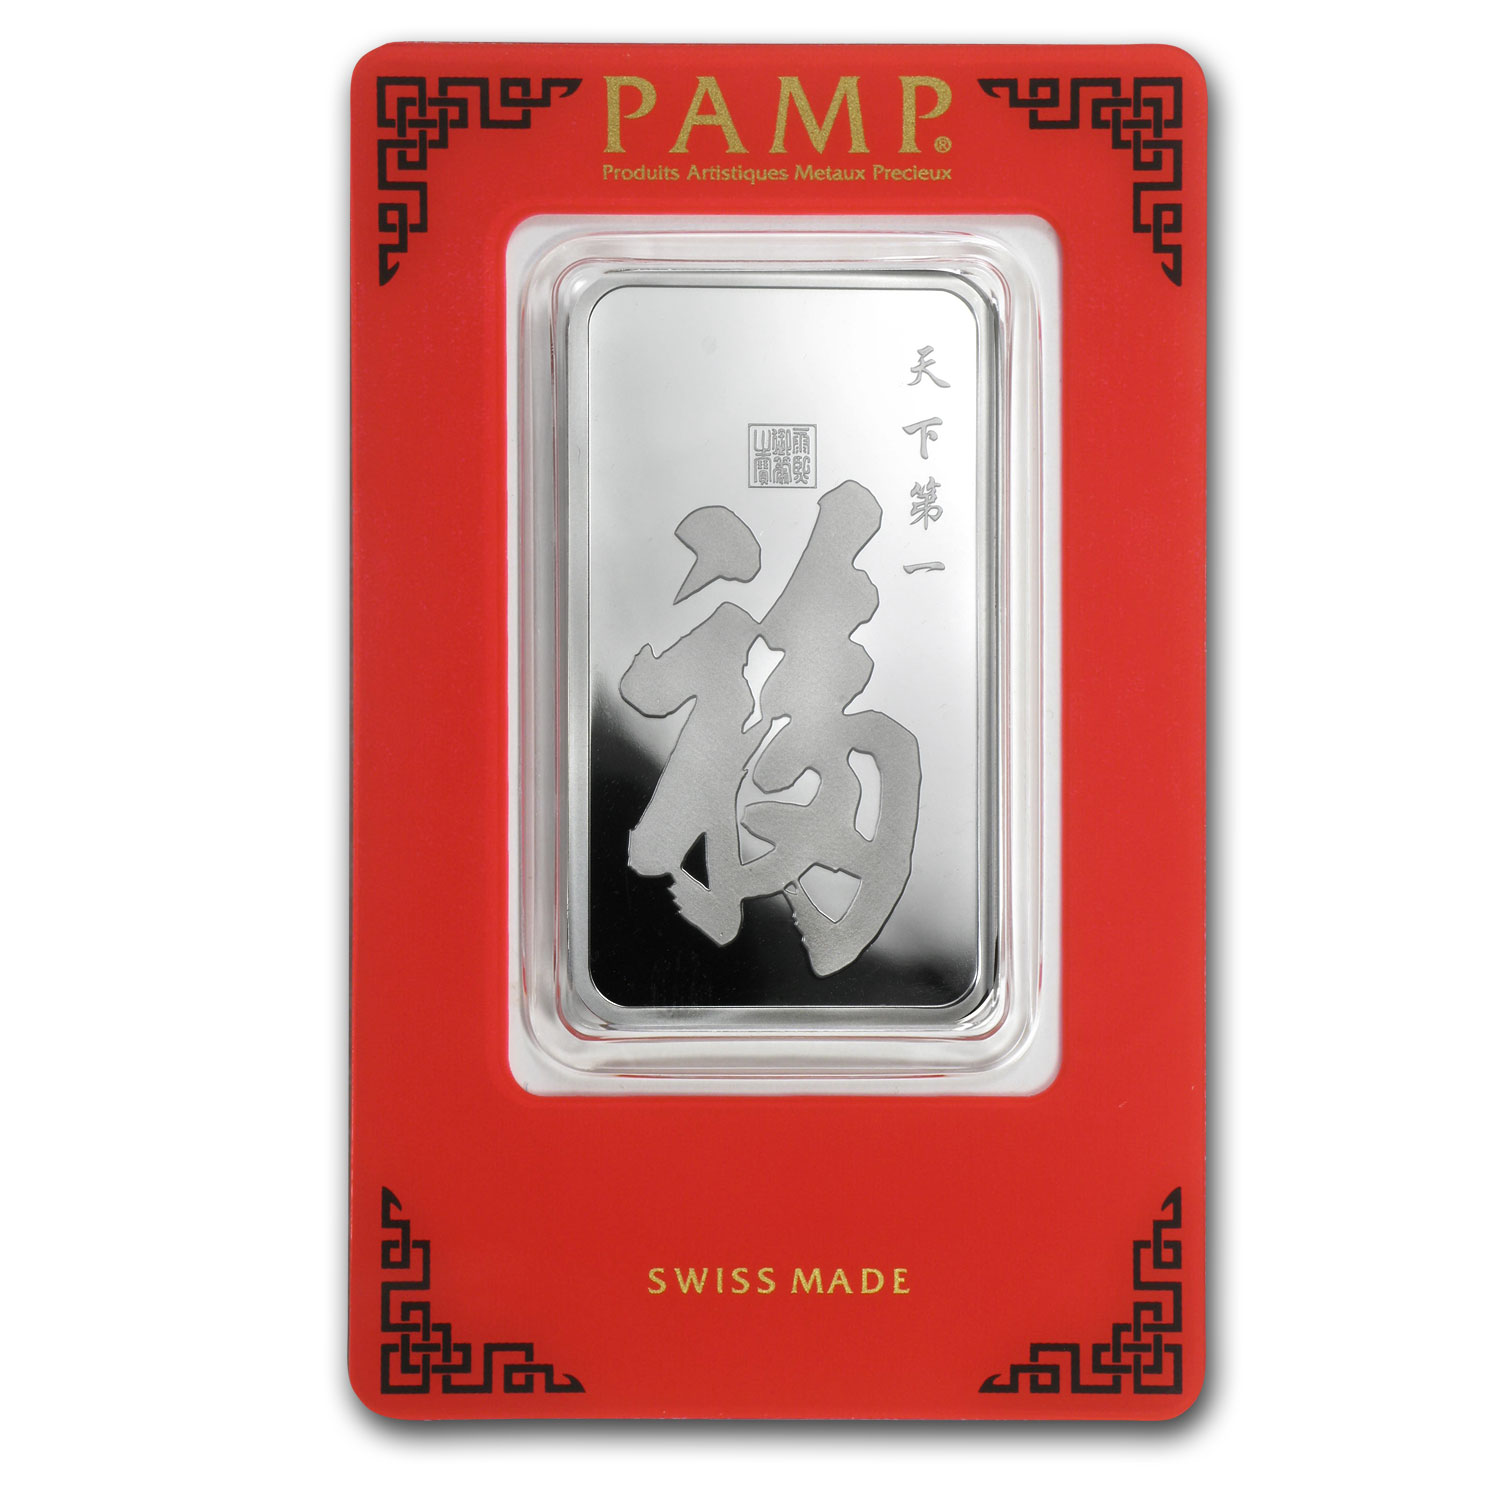 1 oz Silver Bar - PAMP Suisse (True Happiness, In Assay)